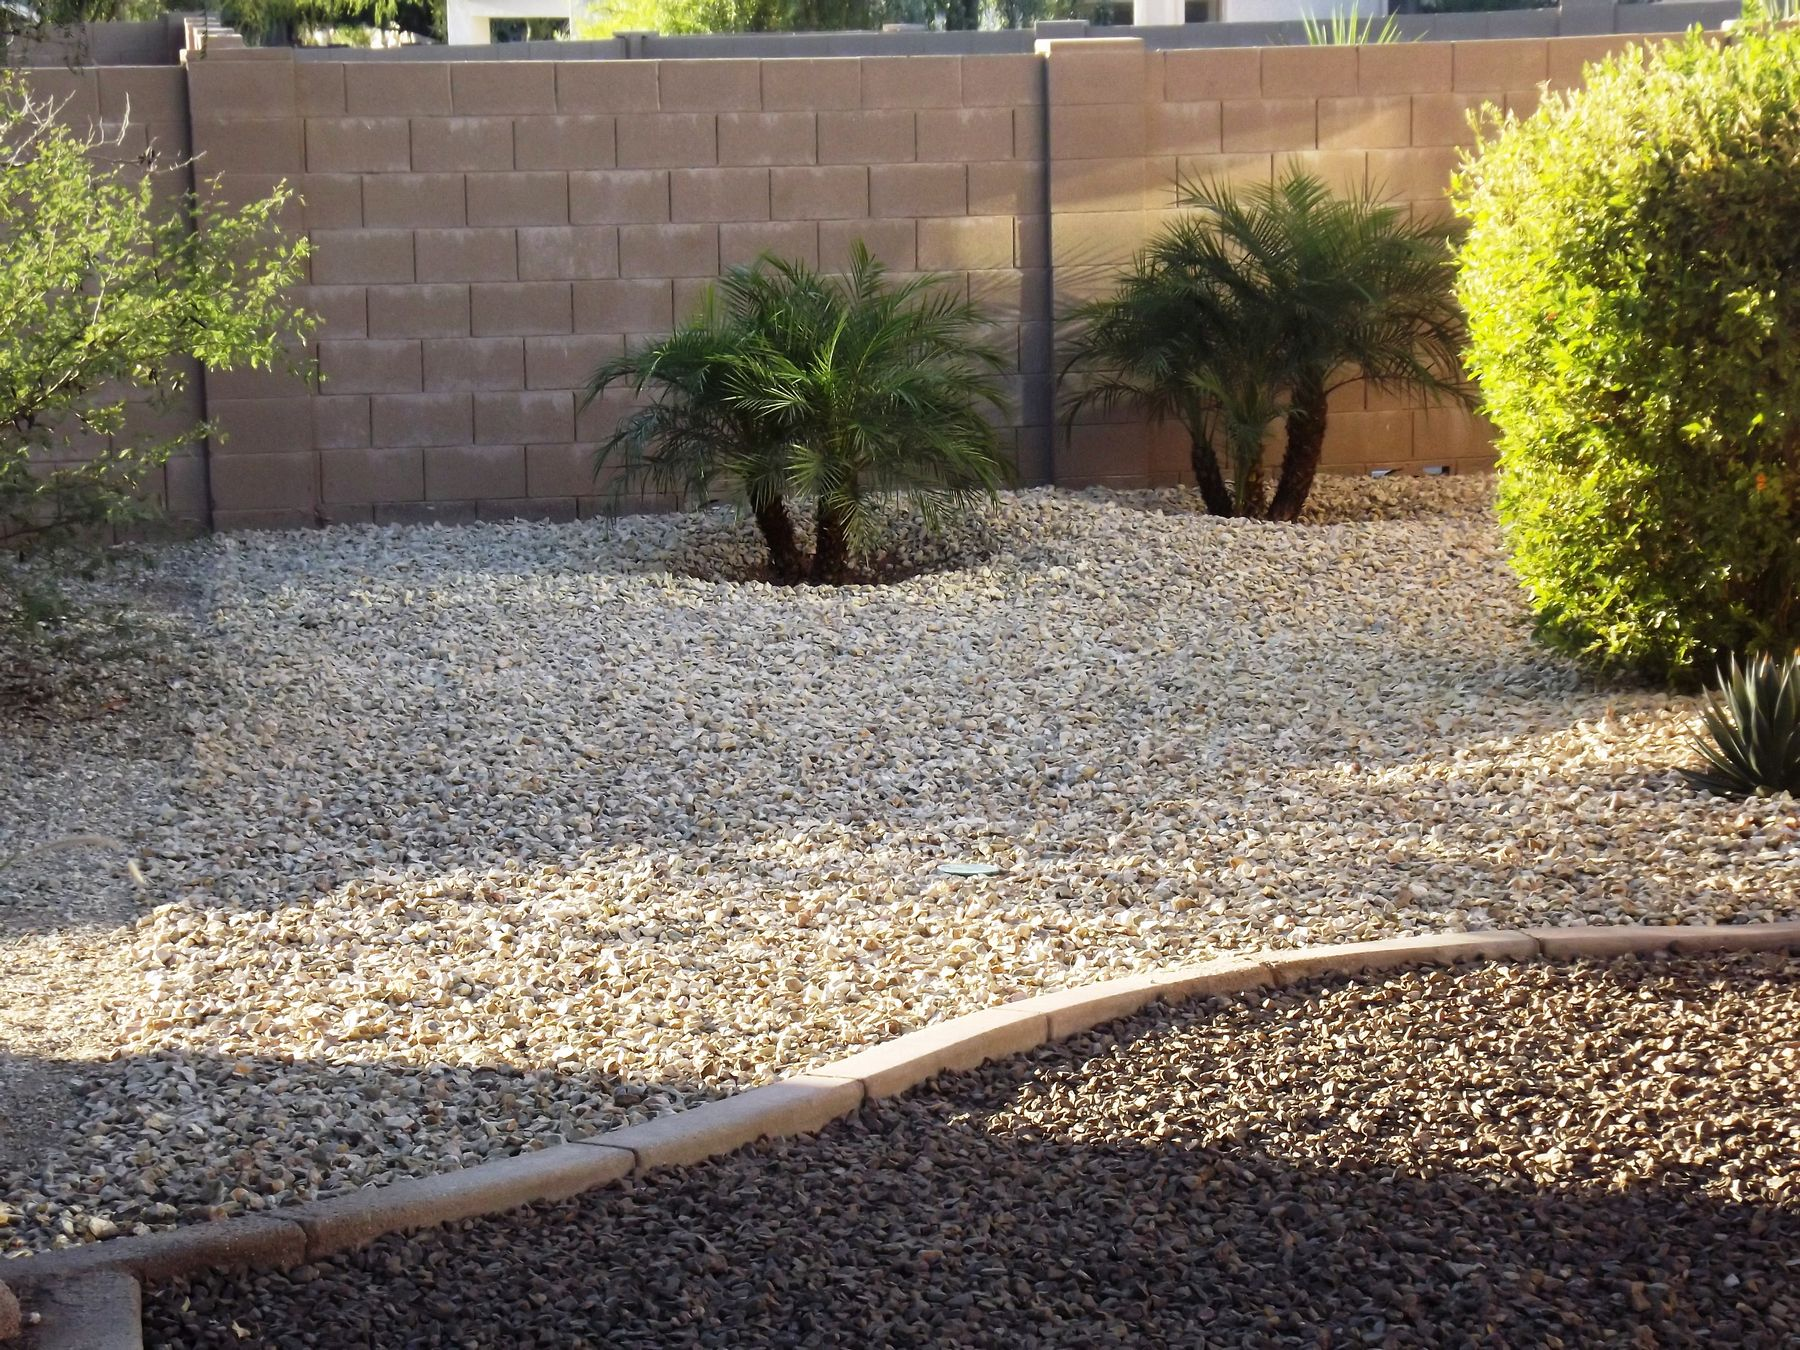 Landscaping Services Include Planting Irrigation Gravel Outdoor Lighting And More Click On An Image Below To Enlarge It